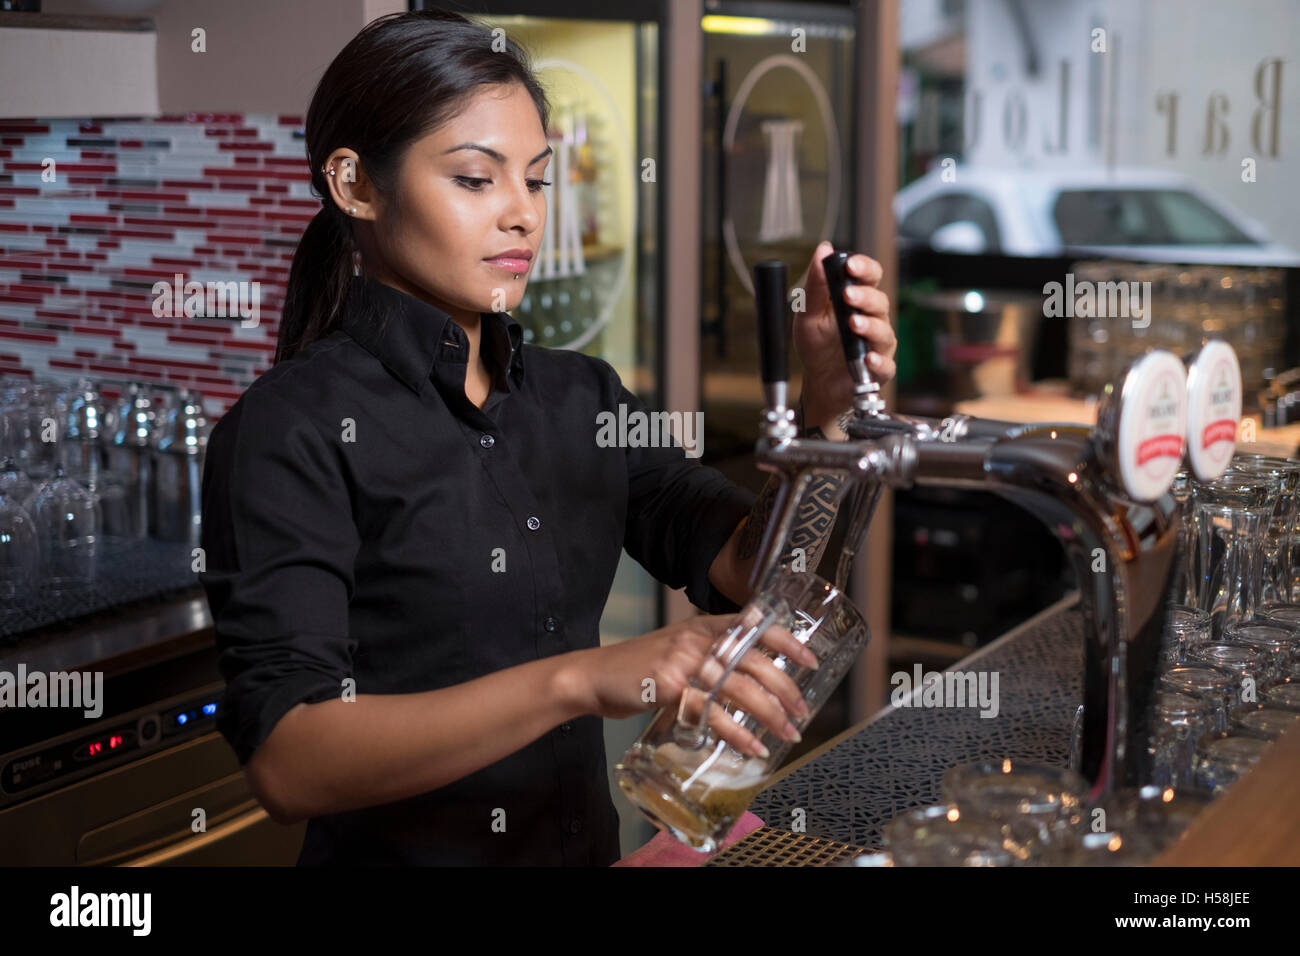 Female bartender pouring a draft beer. - Stock Image